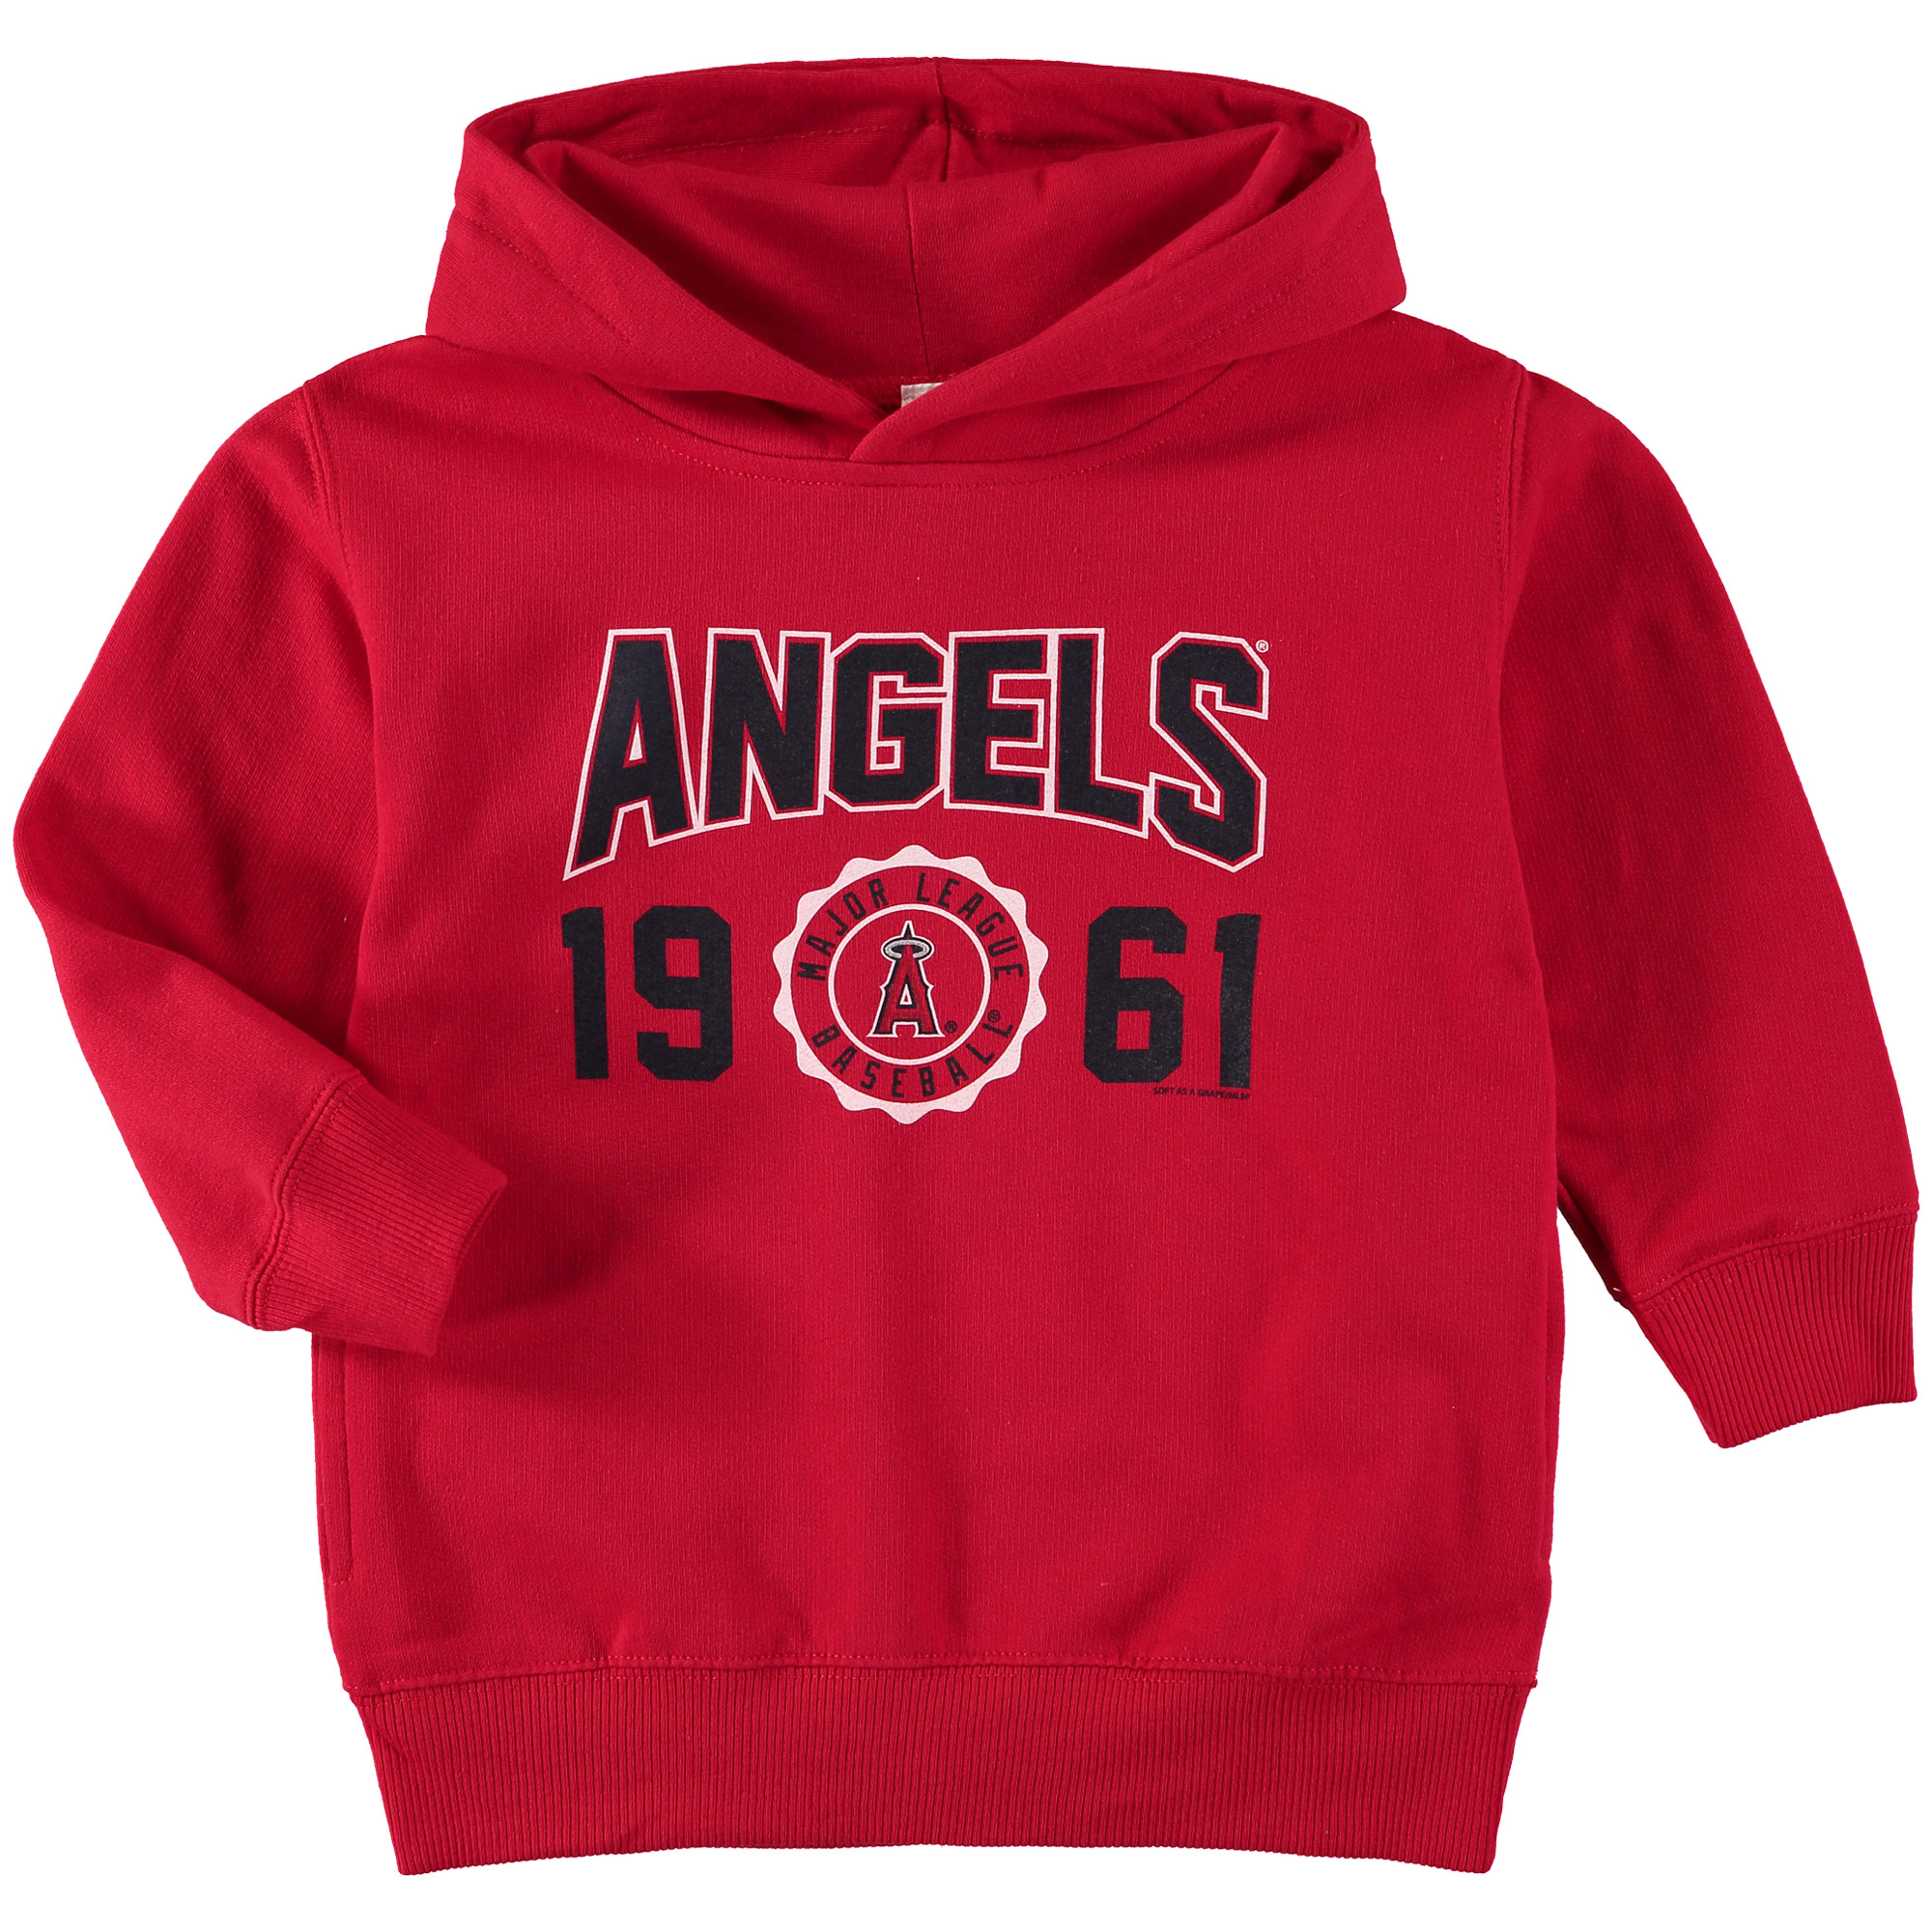 Los Angeles Angels Soft as a Grape Toddler Fleece Pullover Hoodie - Red